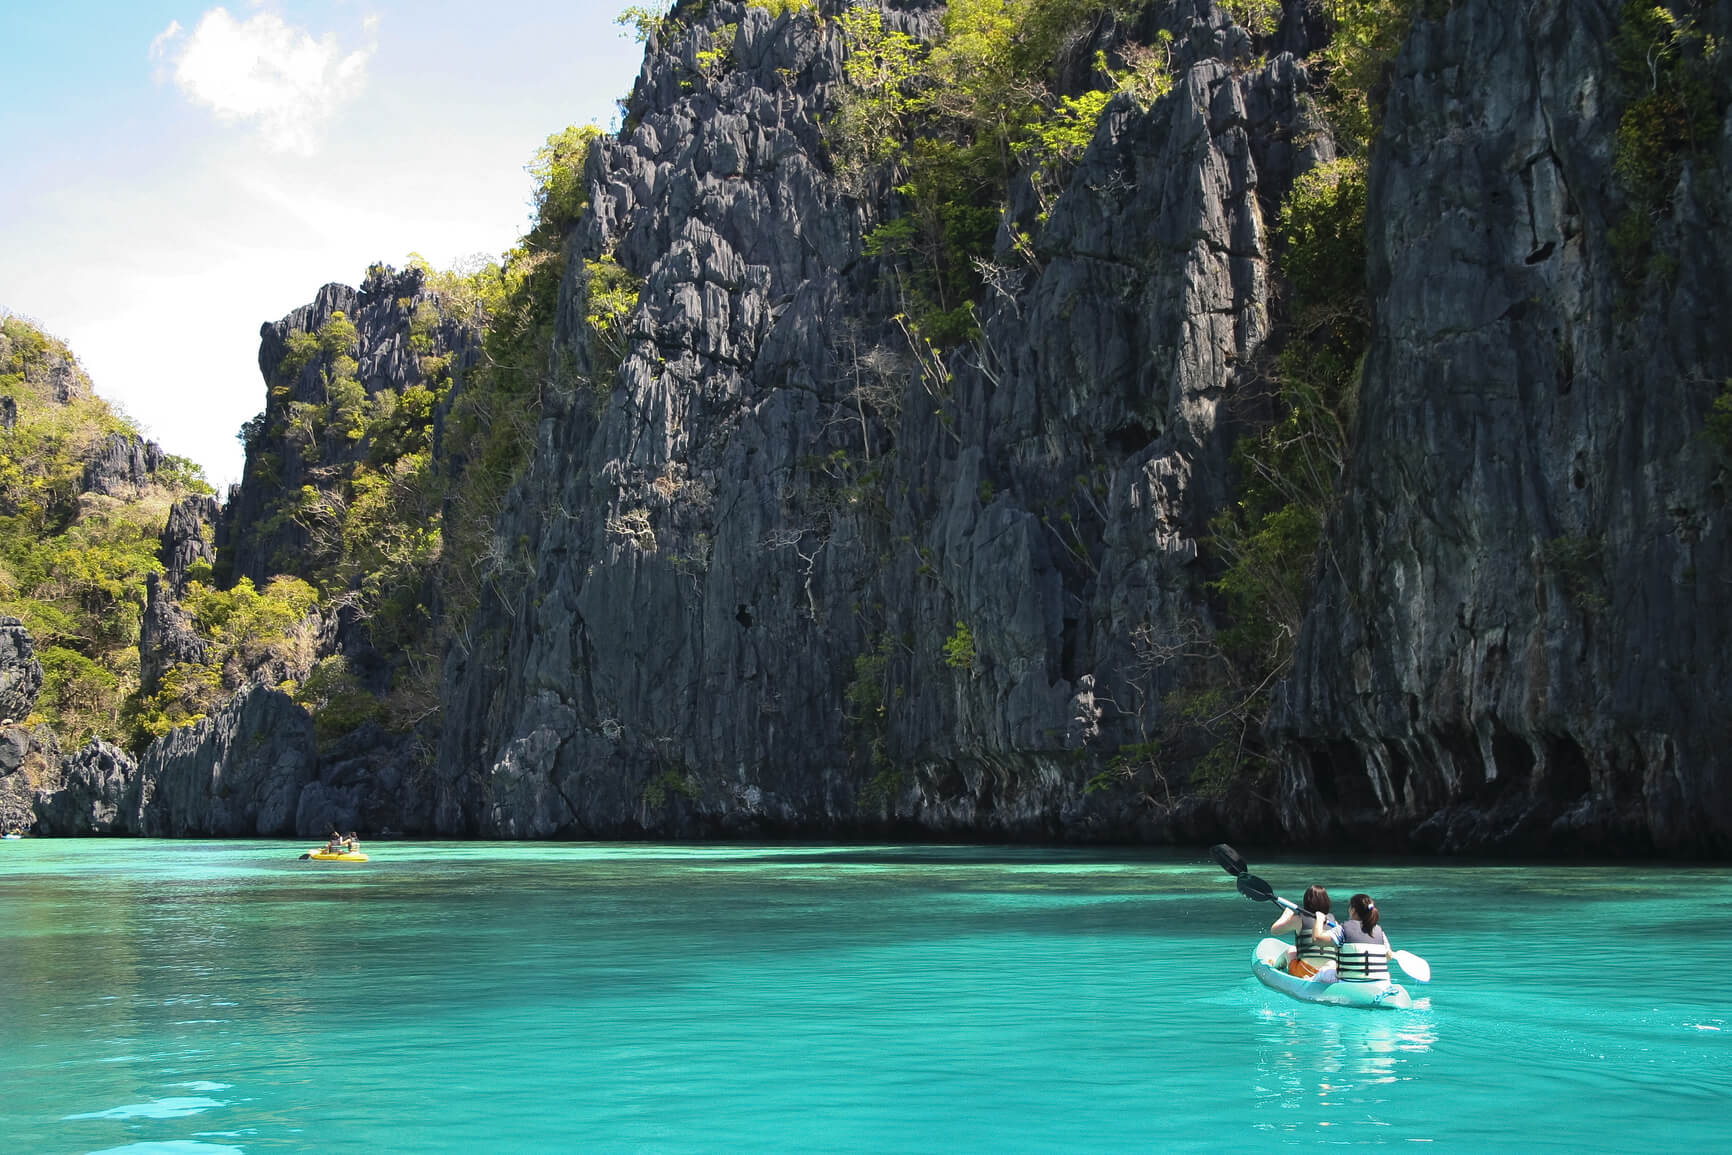 Rome, Italy to Manila, Philippines for only €342 roundtrip